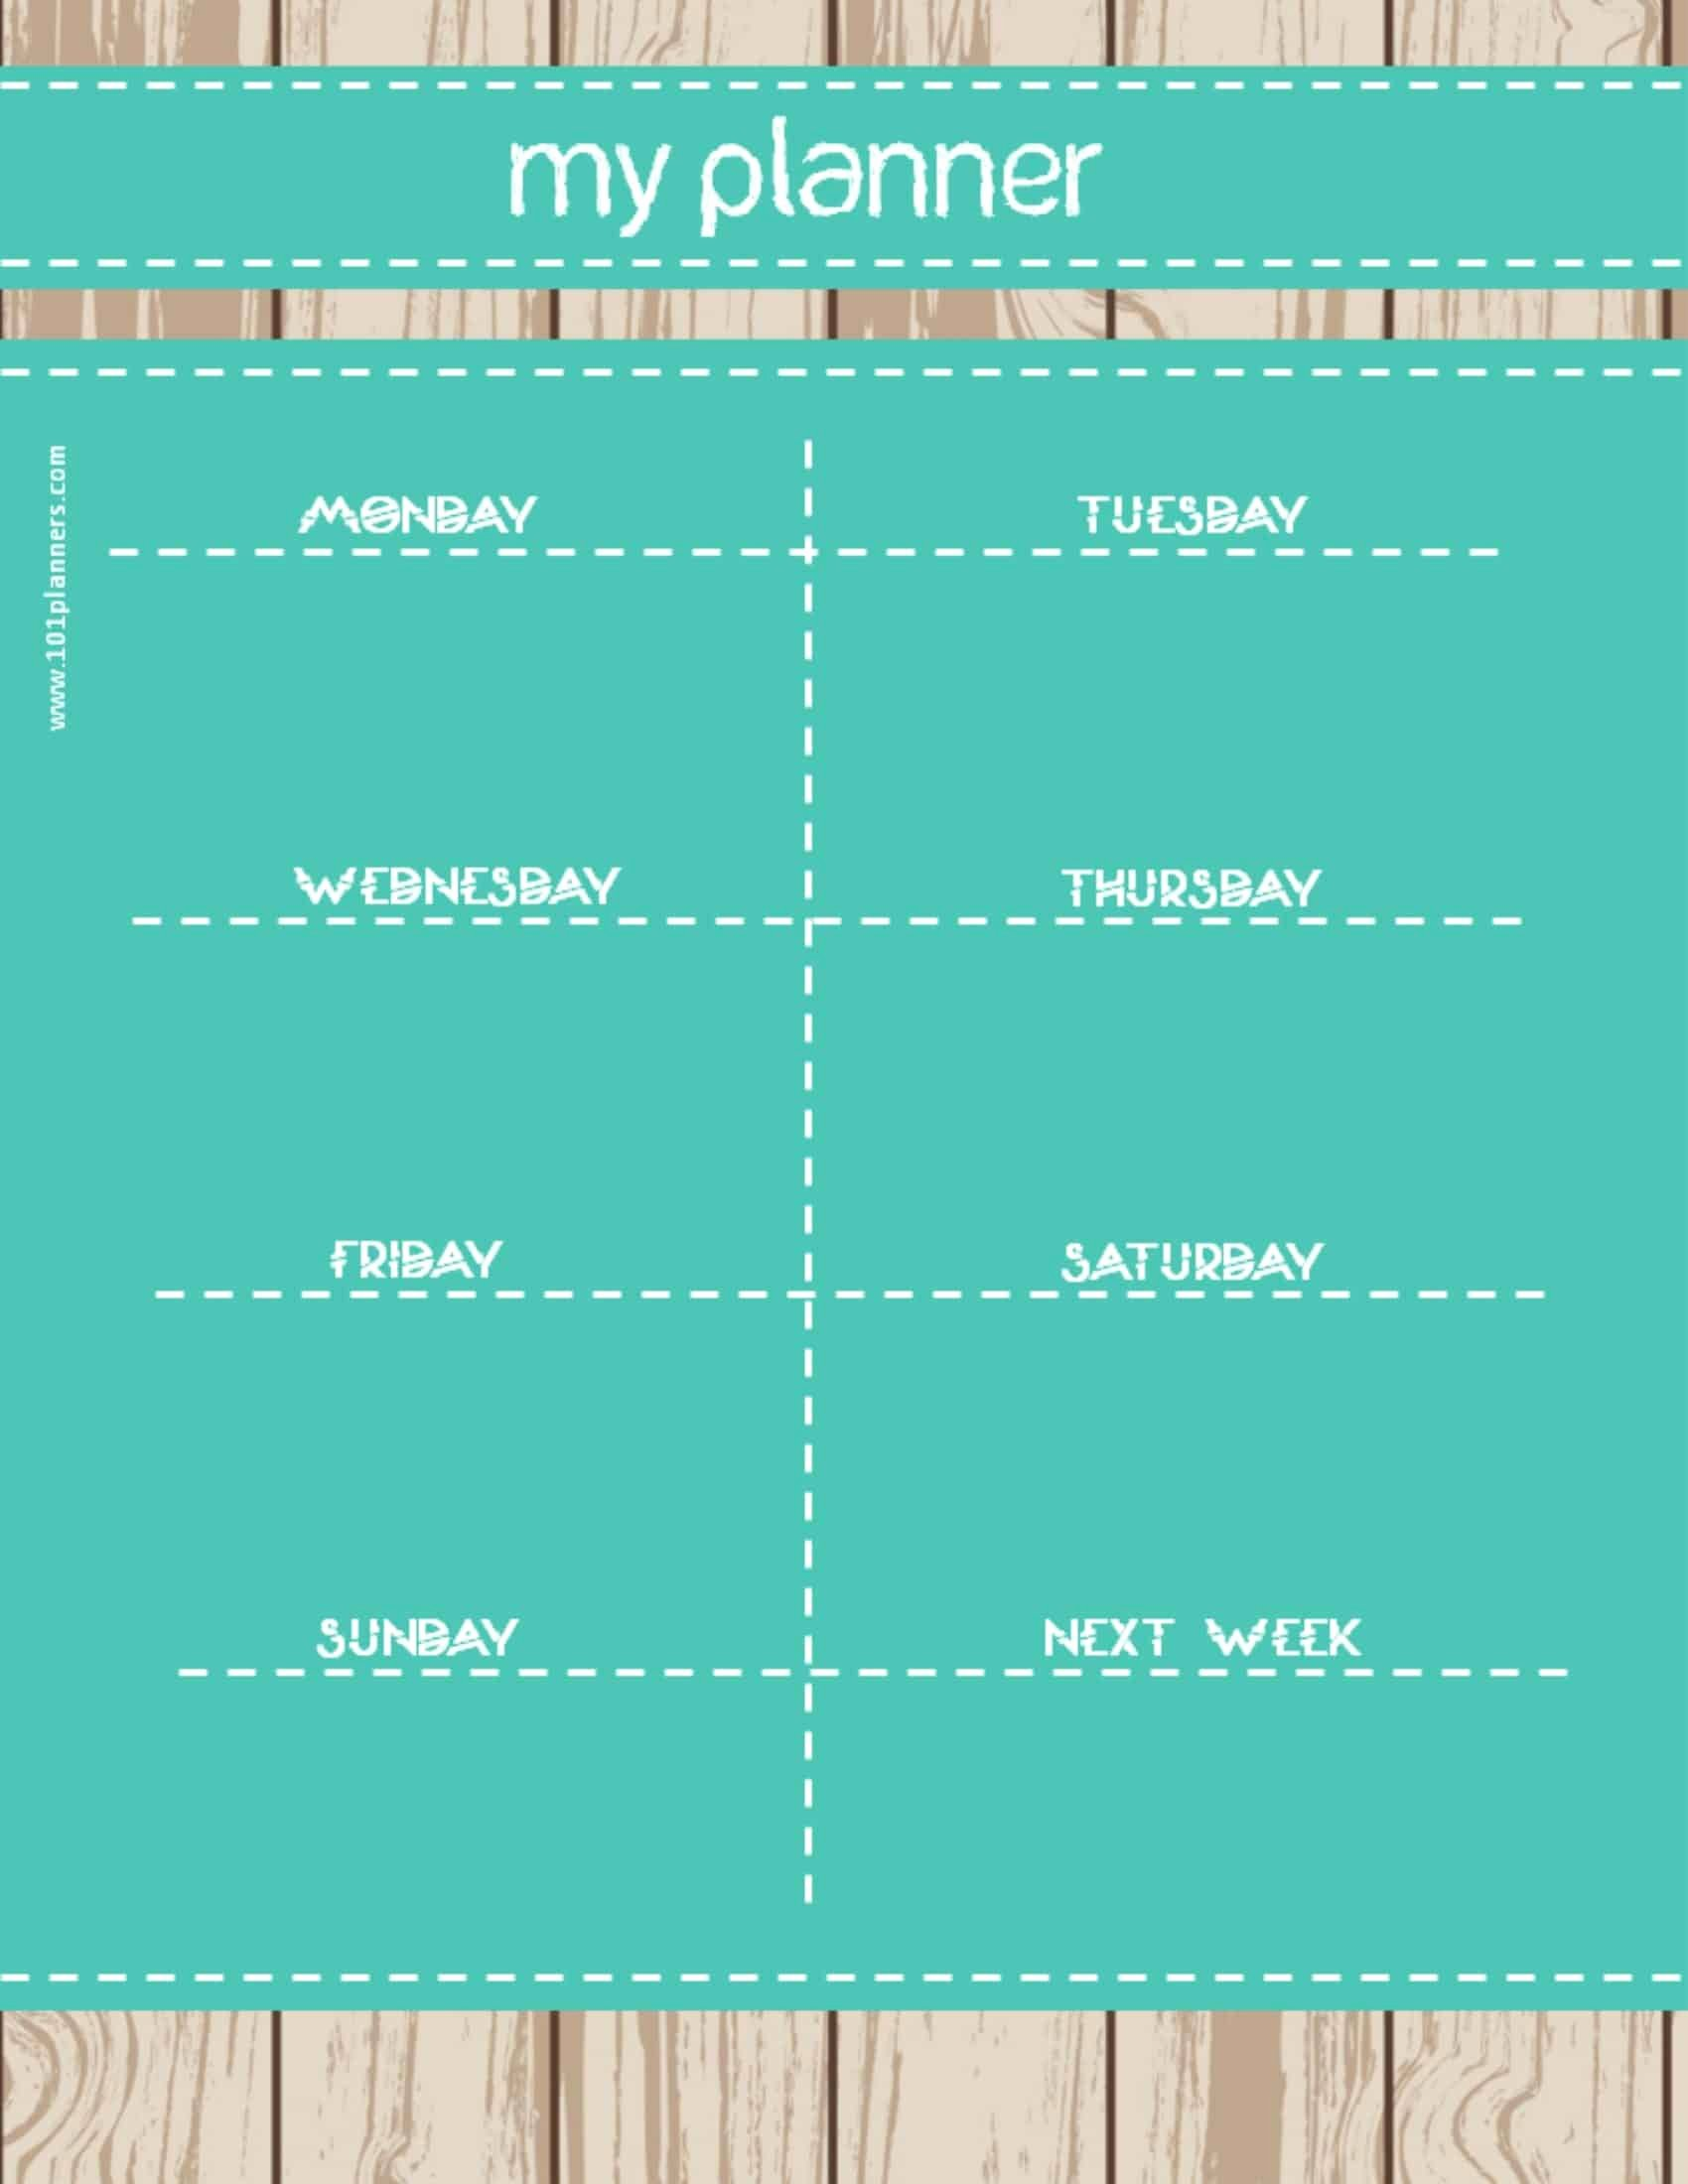 Custom Day Planner Template New Weekly Calendar Maker